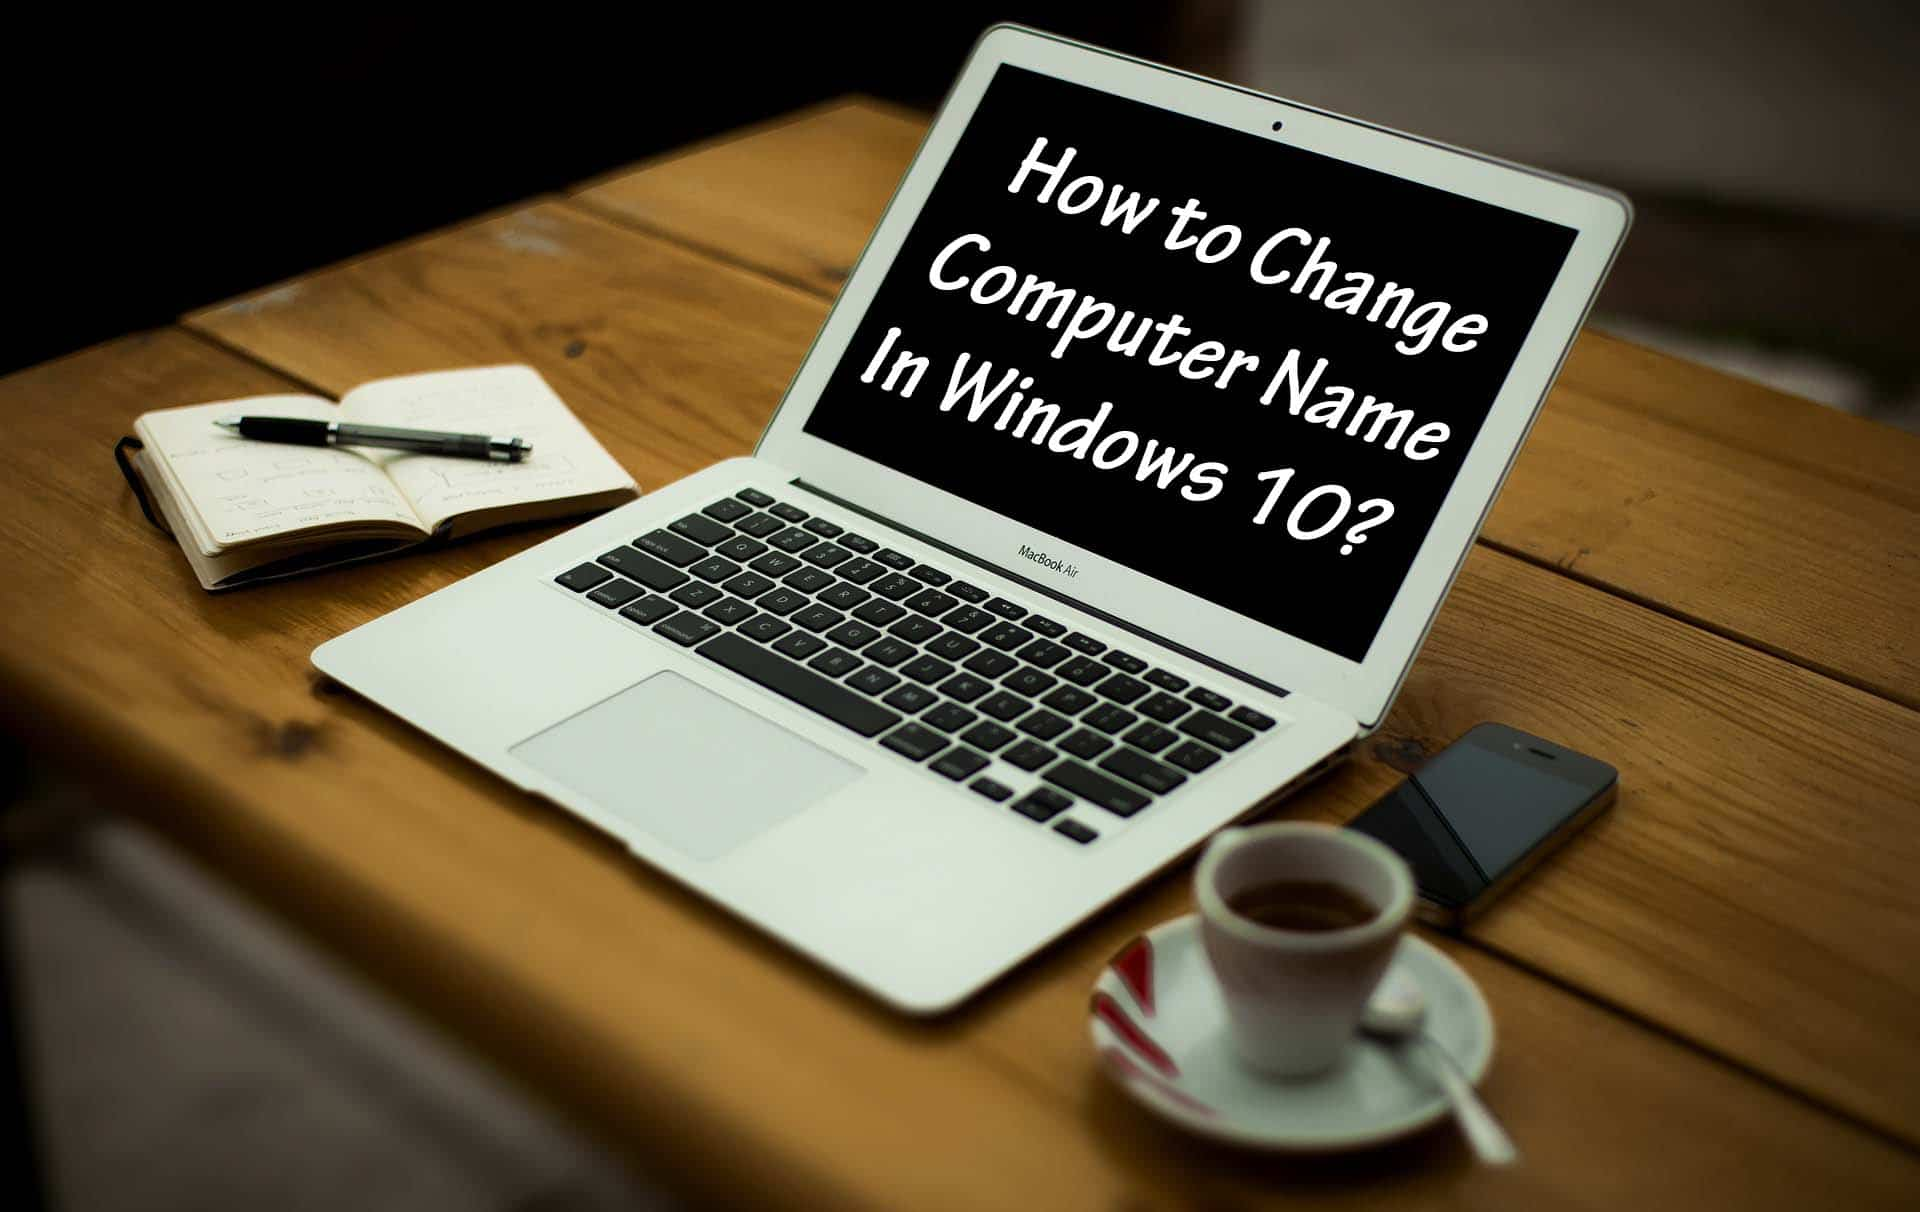 Change Computer Name Windows 10